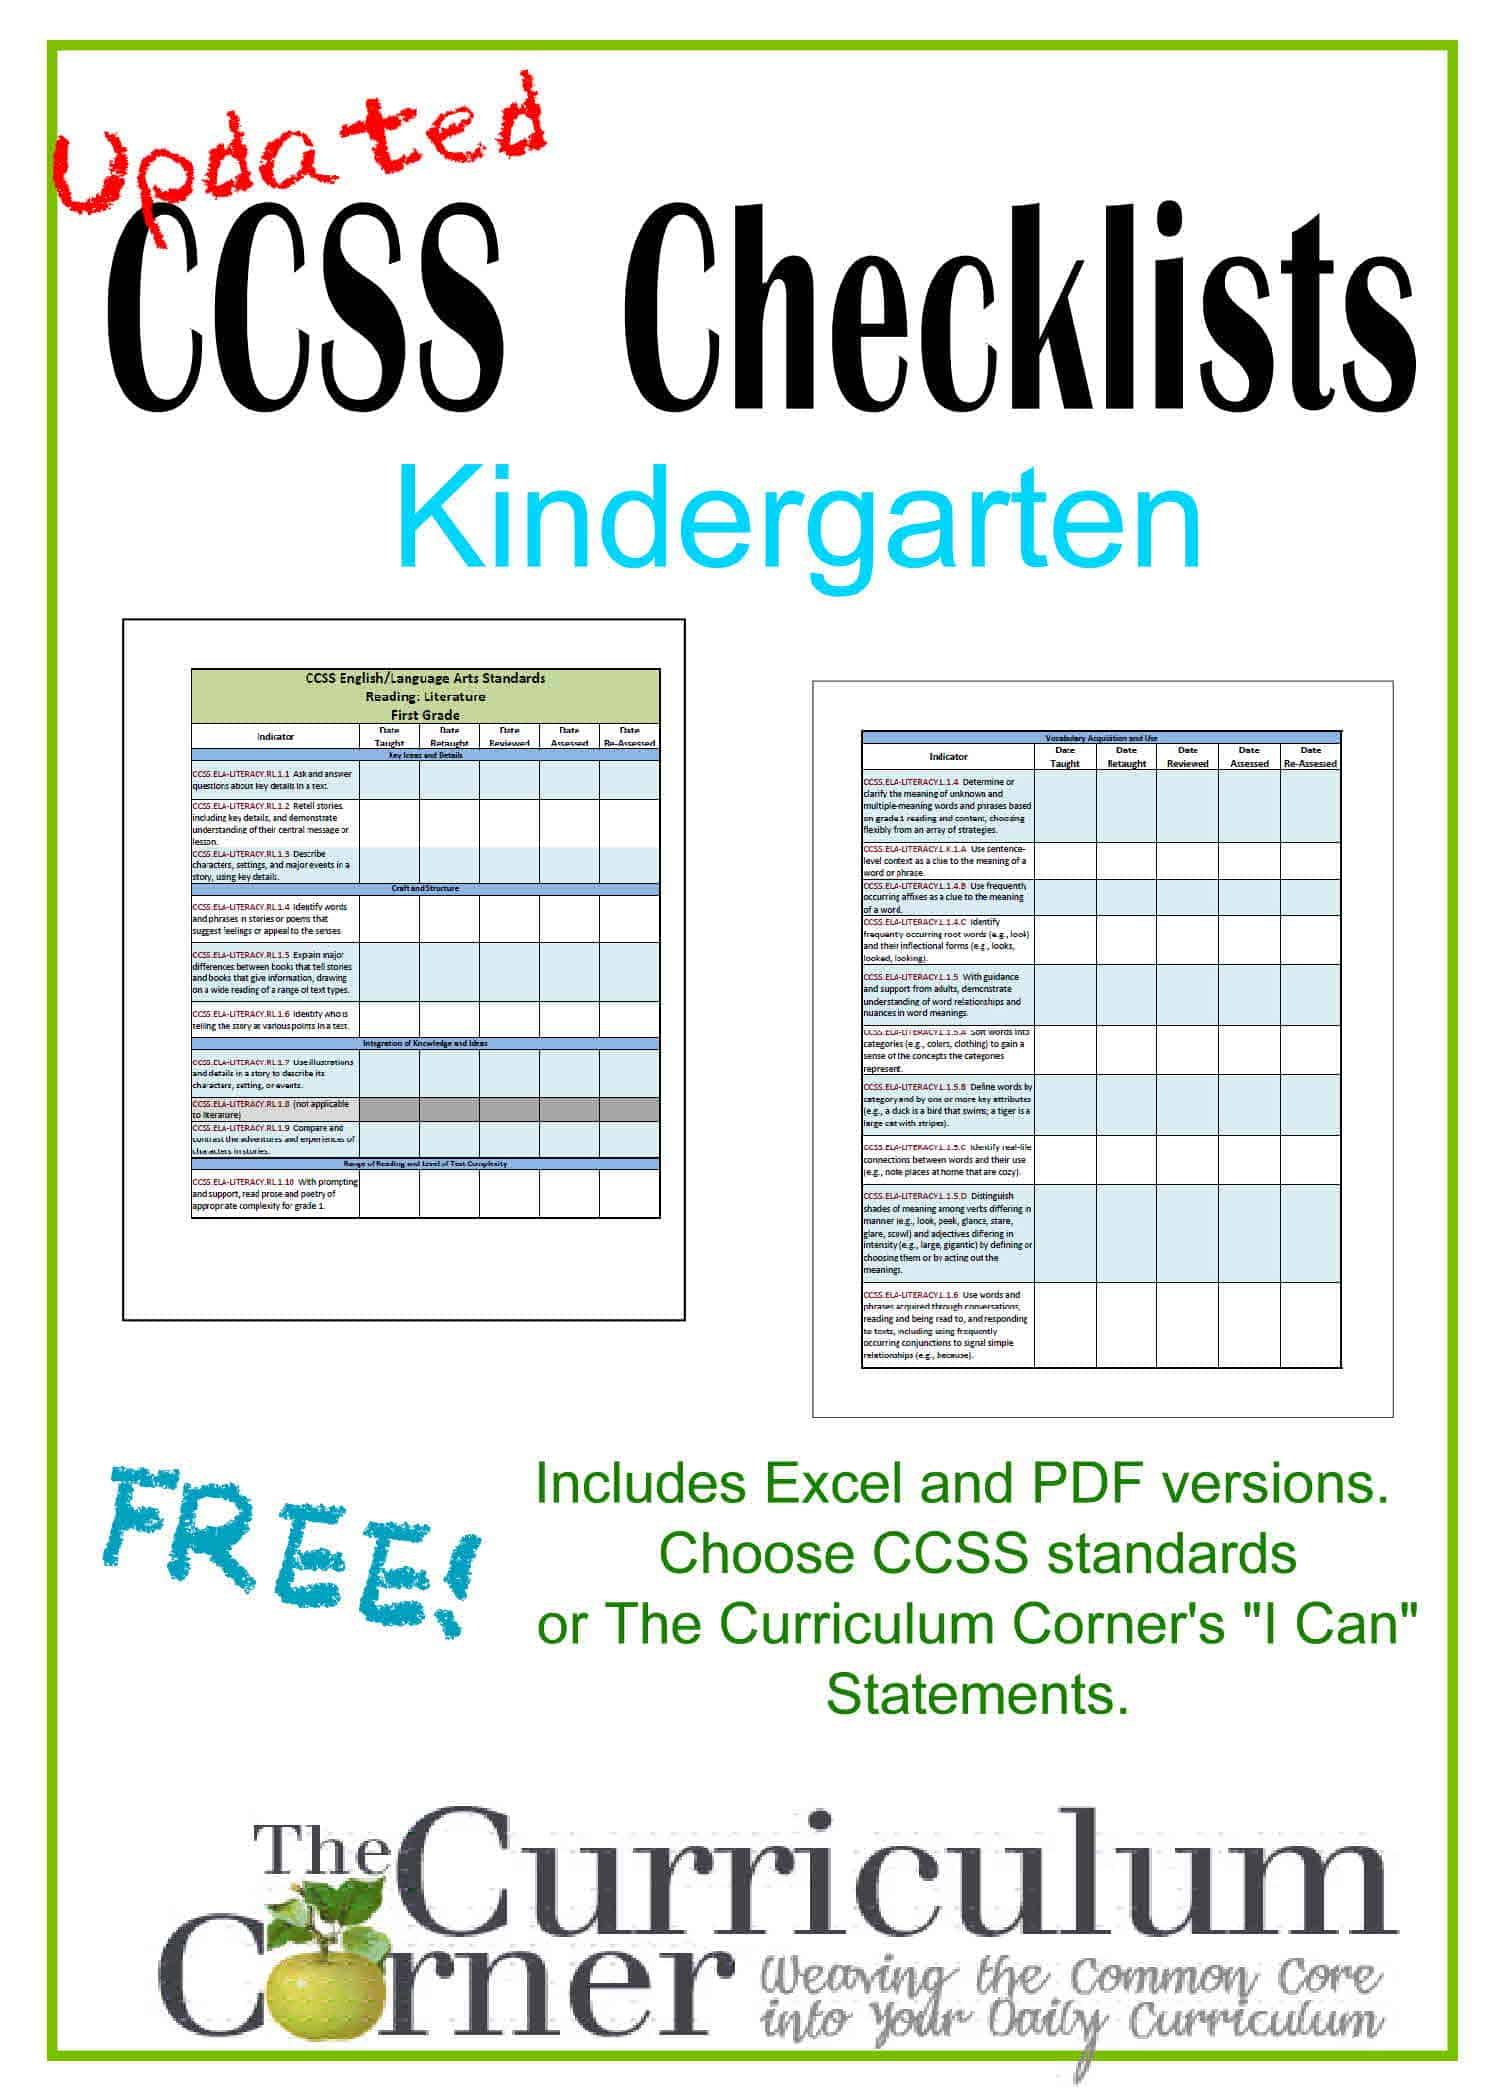 Worksheet Kindergarten Curriculum updated kindergarten checklists ccss and i cans the kinder corner common core for can statements free from www thecurriculumcorner